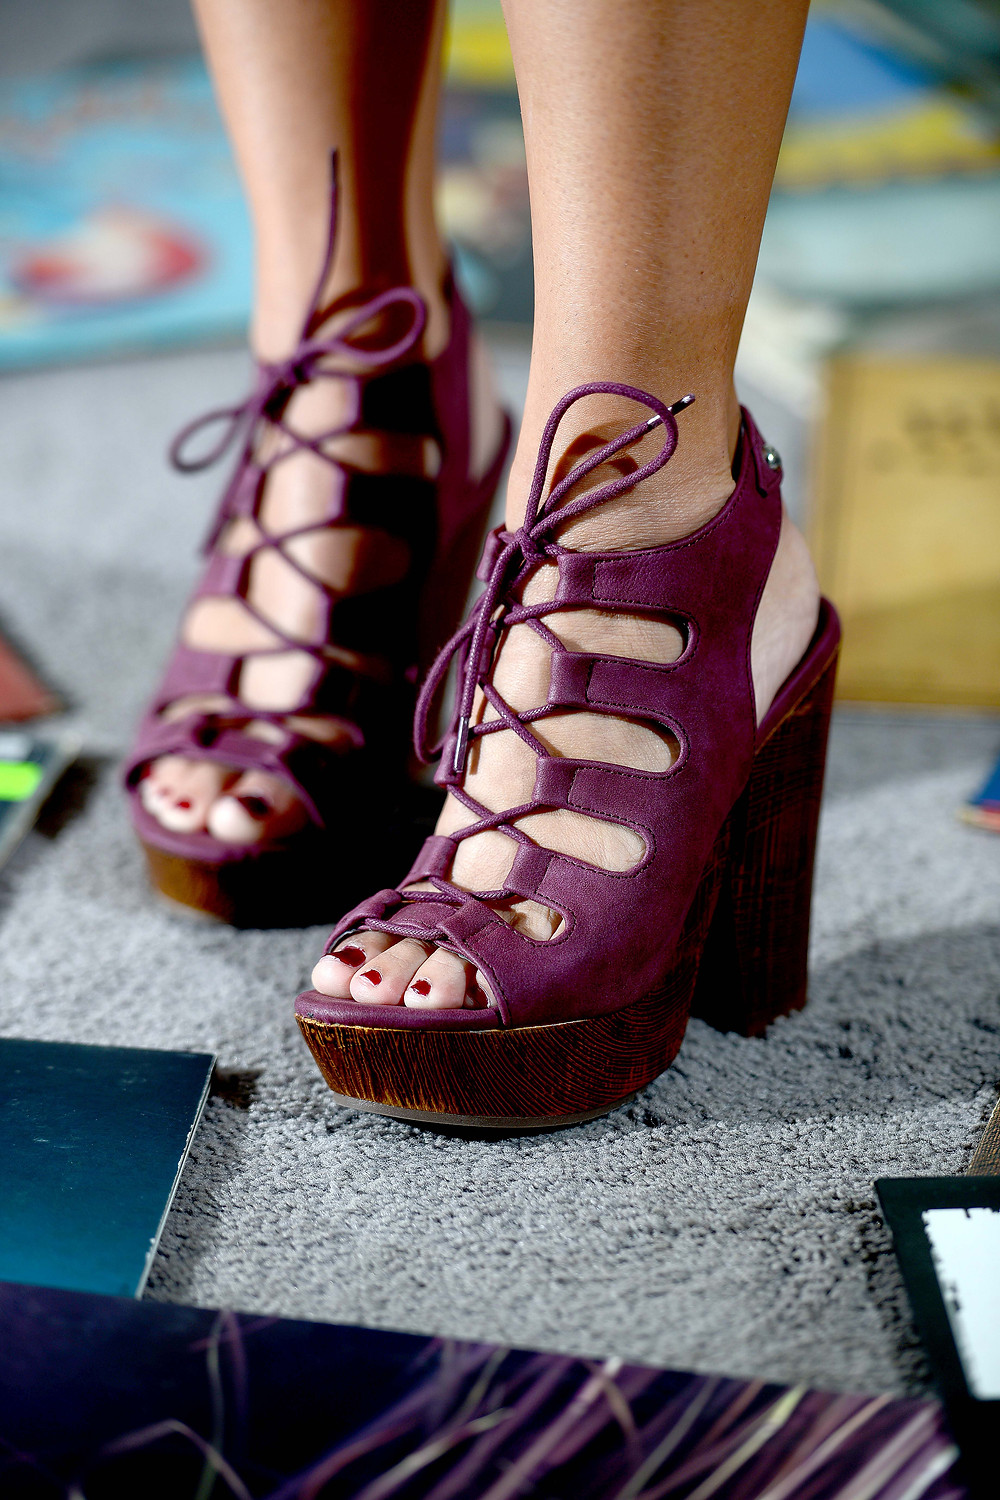 A music blogger and vinyl record collector poses in purple, lace-up heels with a section from her vinyl record collection.